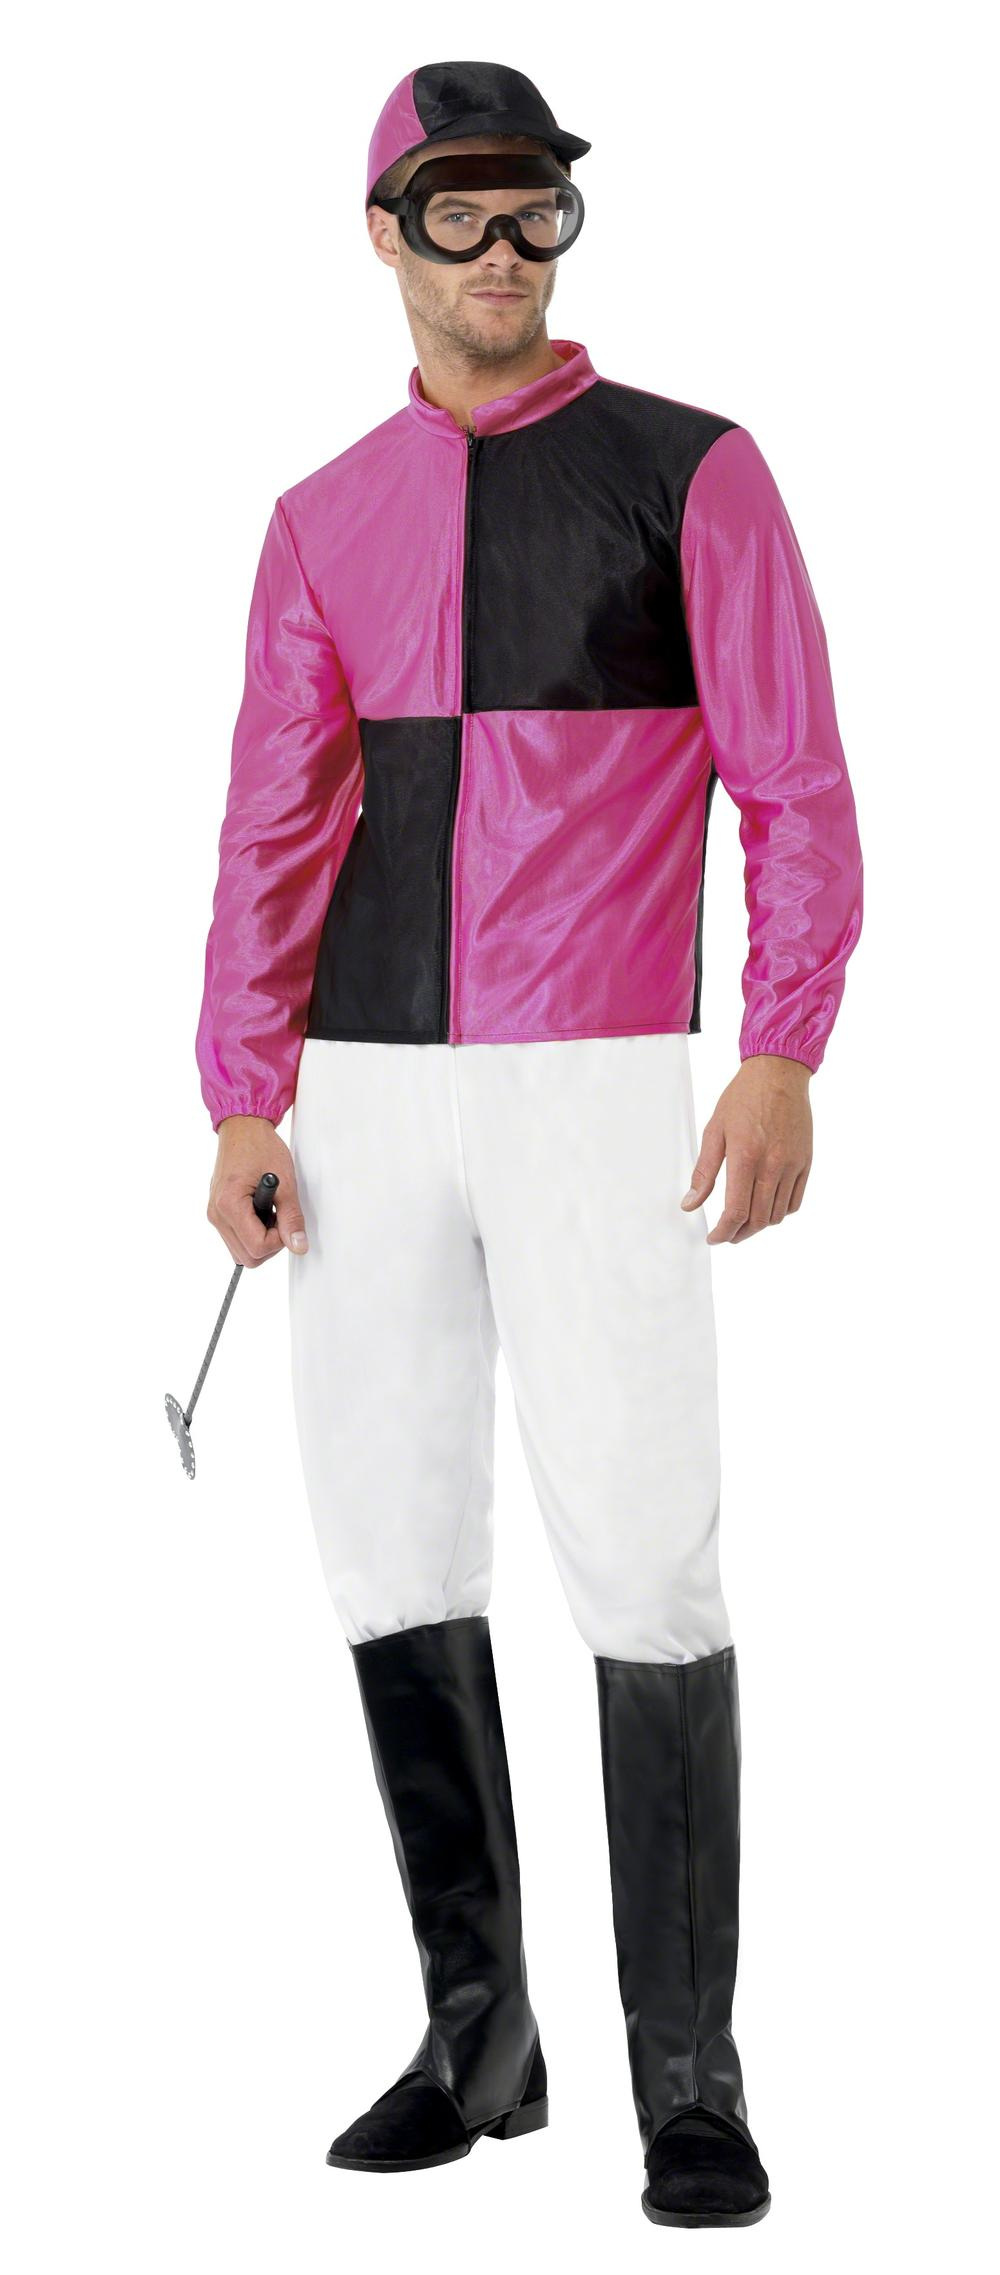 Jockey Mens Fancy Dress Sports Pink Racing Horse Rider Polo Adult Costume Outfit